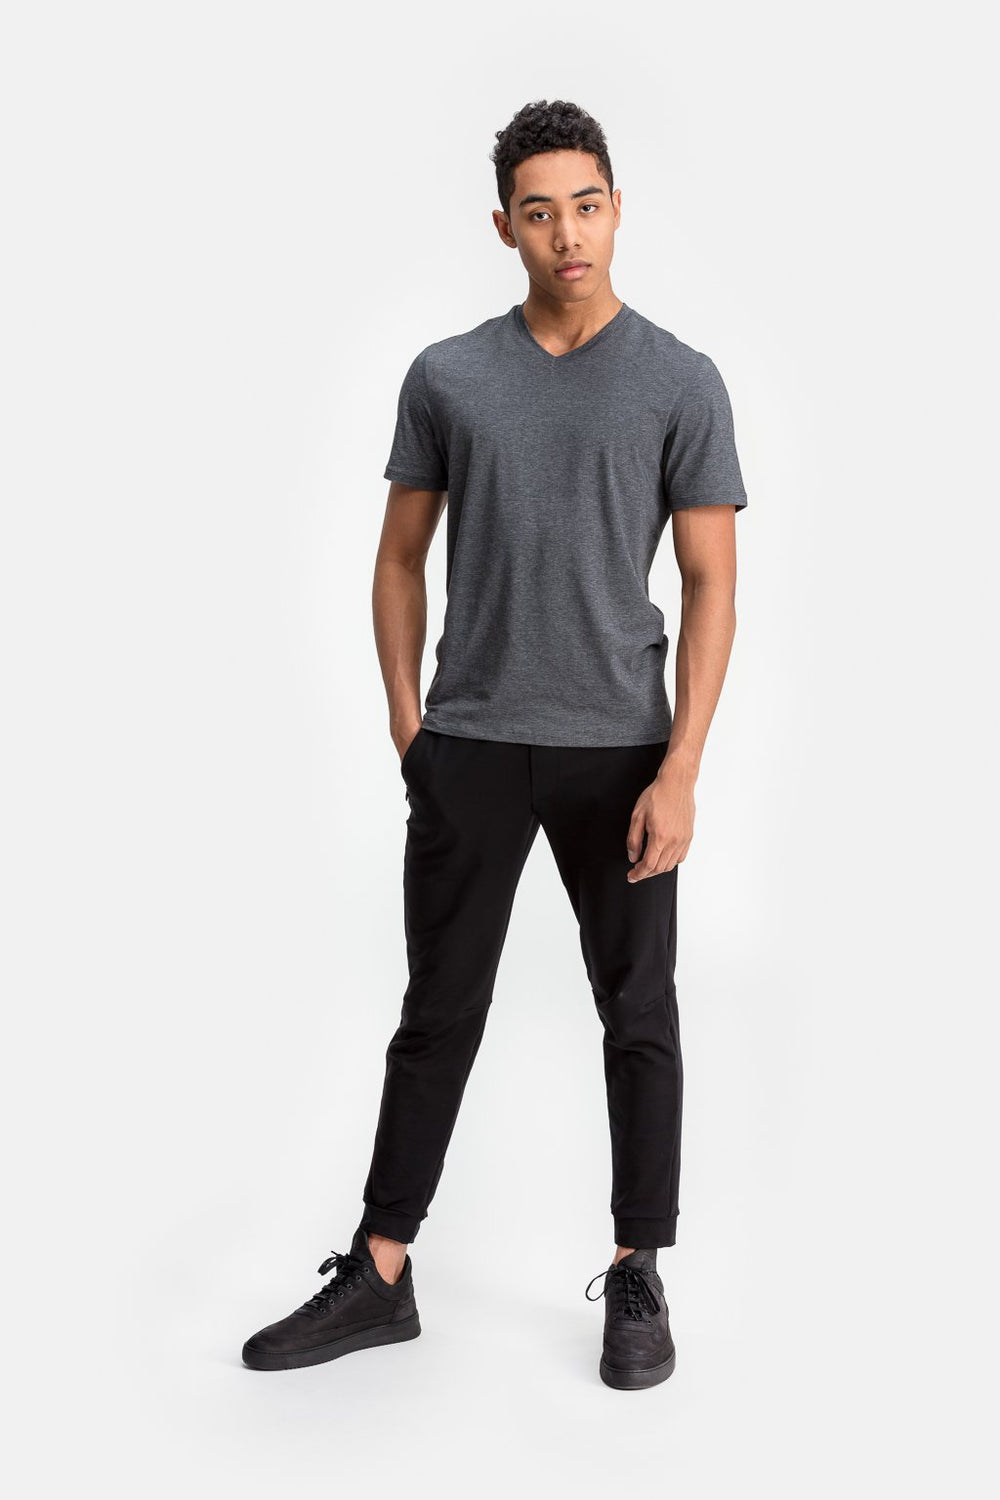 RYU Mens Standard Issue V Neck in Asphalt Heather